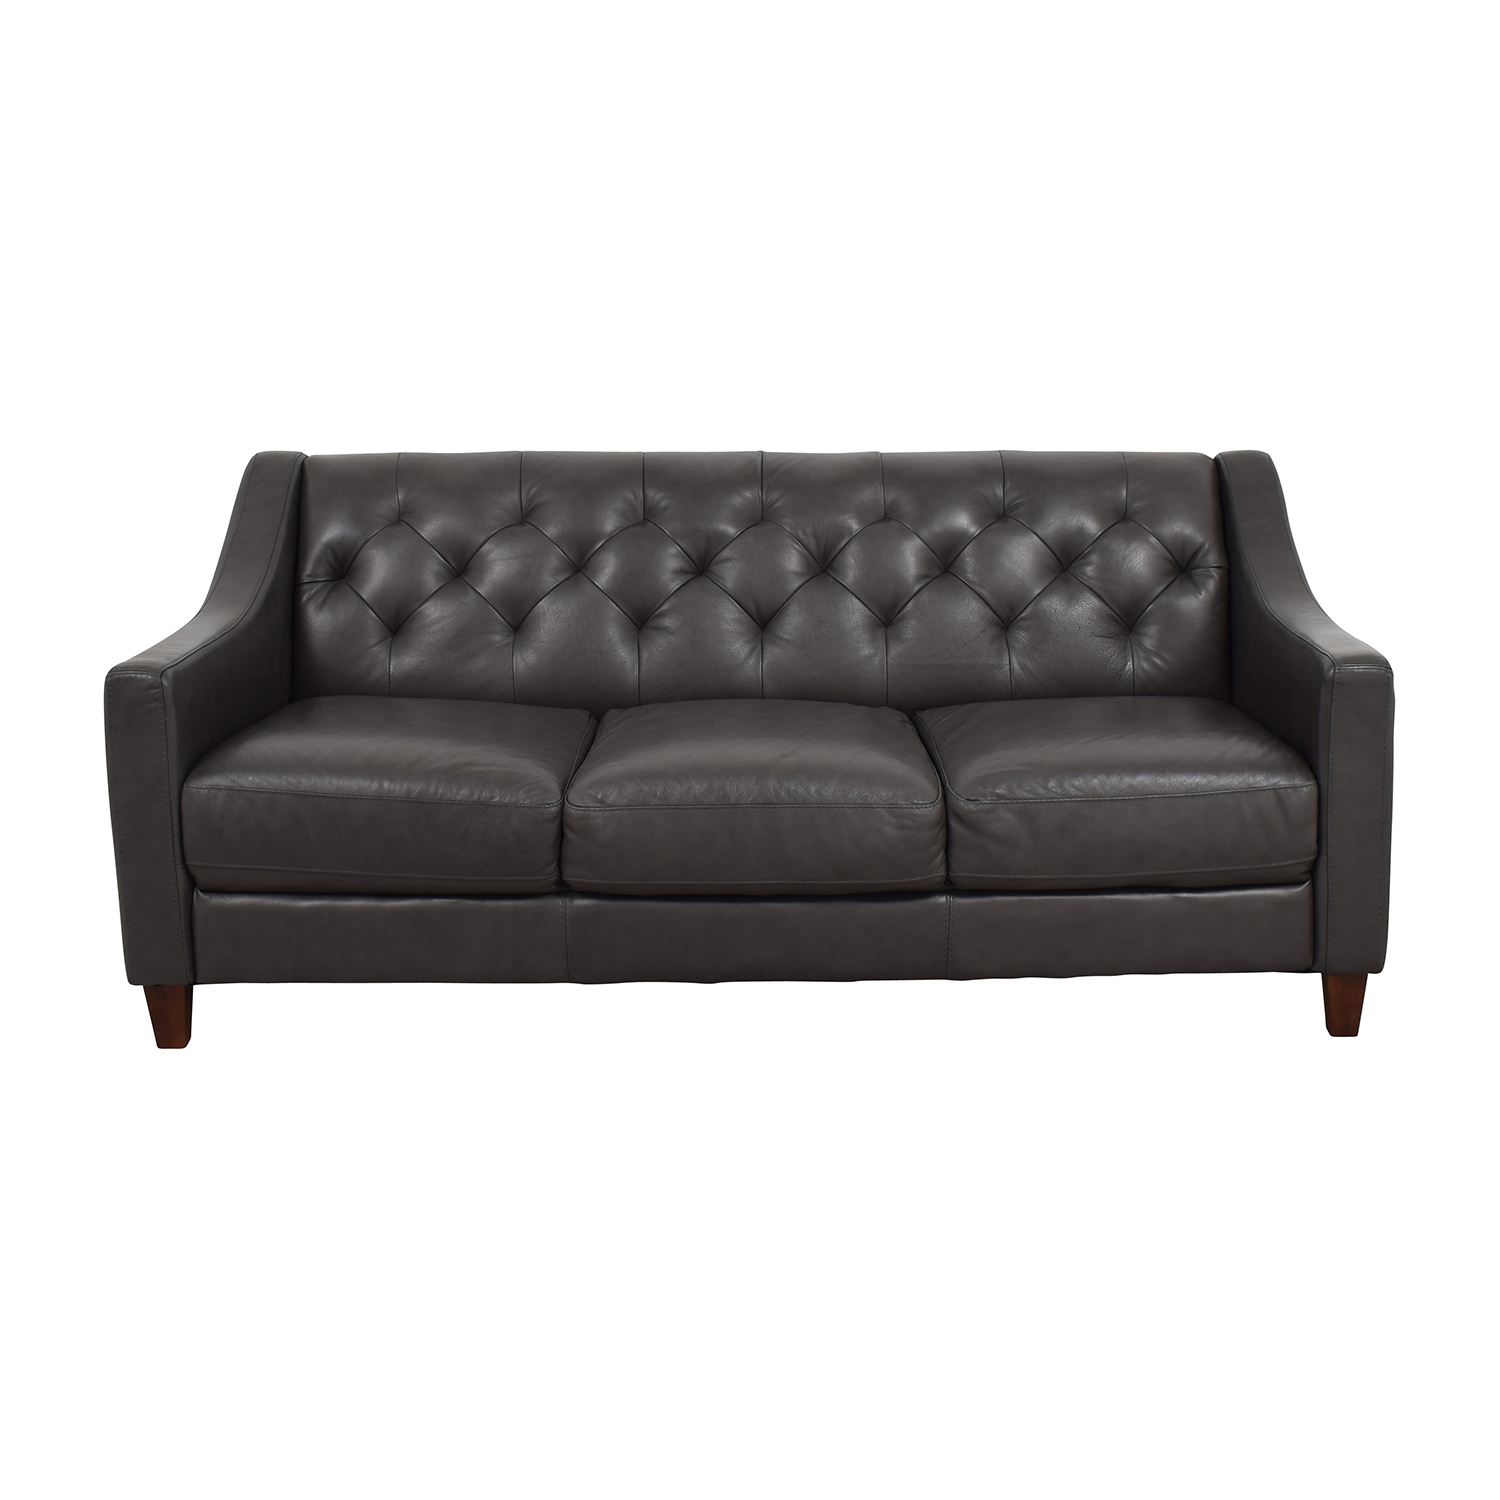 Sofa S 69% Off - Macy's Macy's Tufted Gray Leather Sofa / Sofas